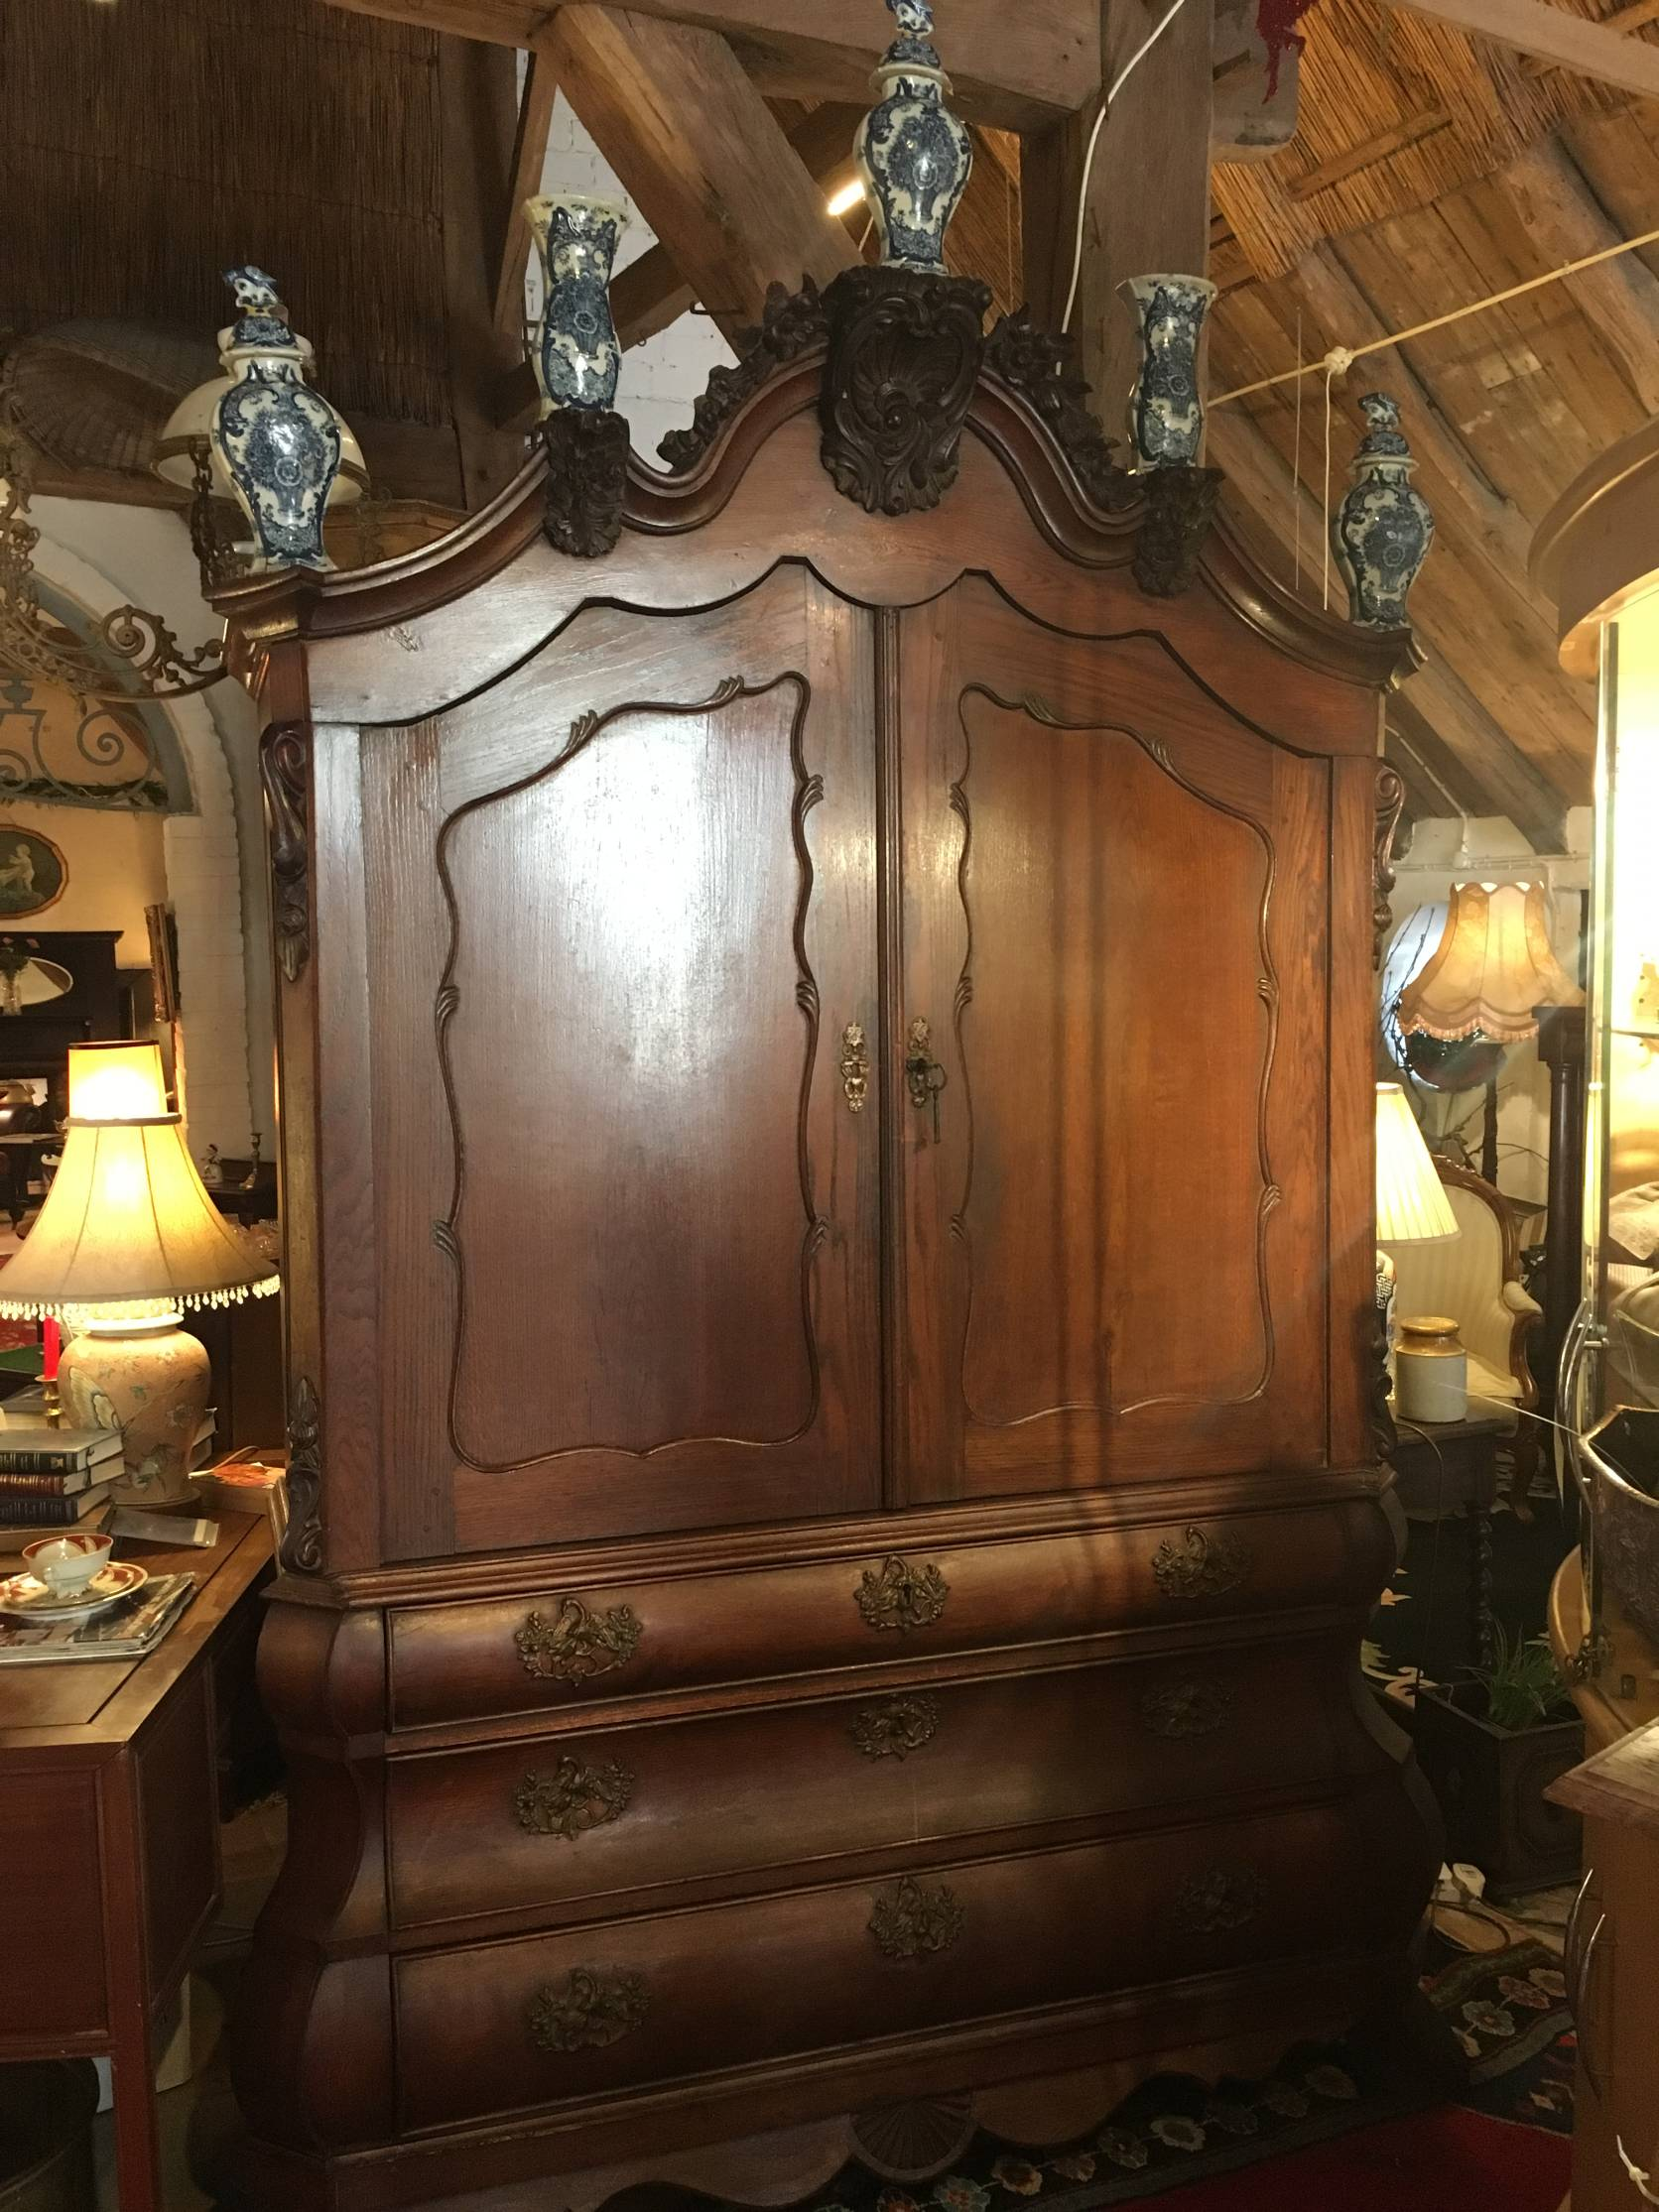 Dutch Cabinet with Vases €1200